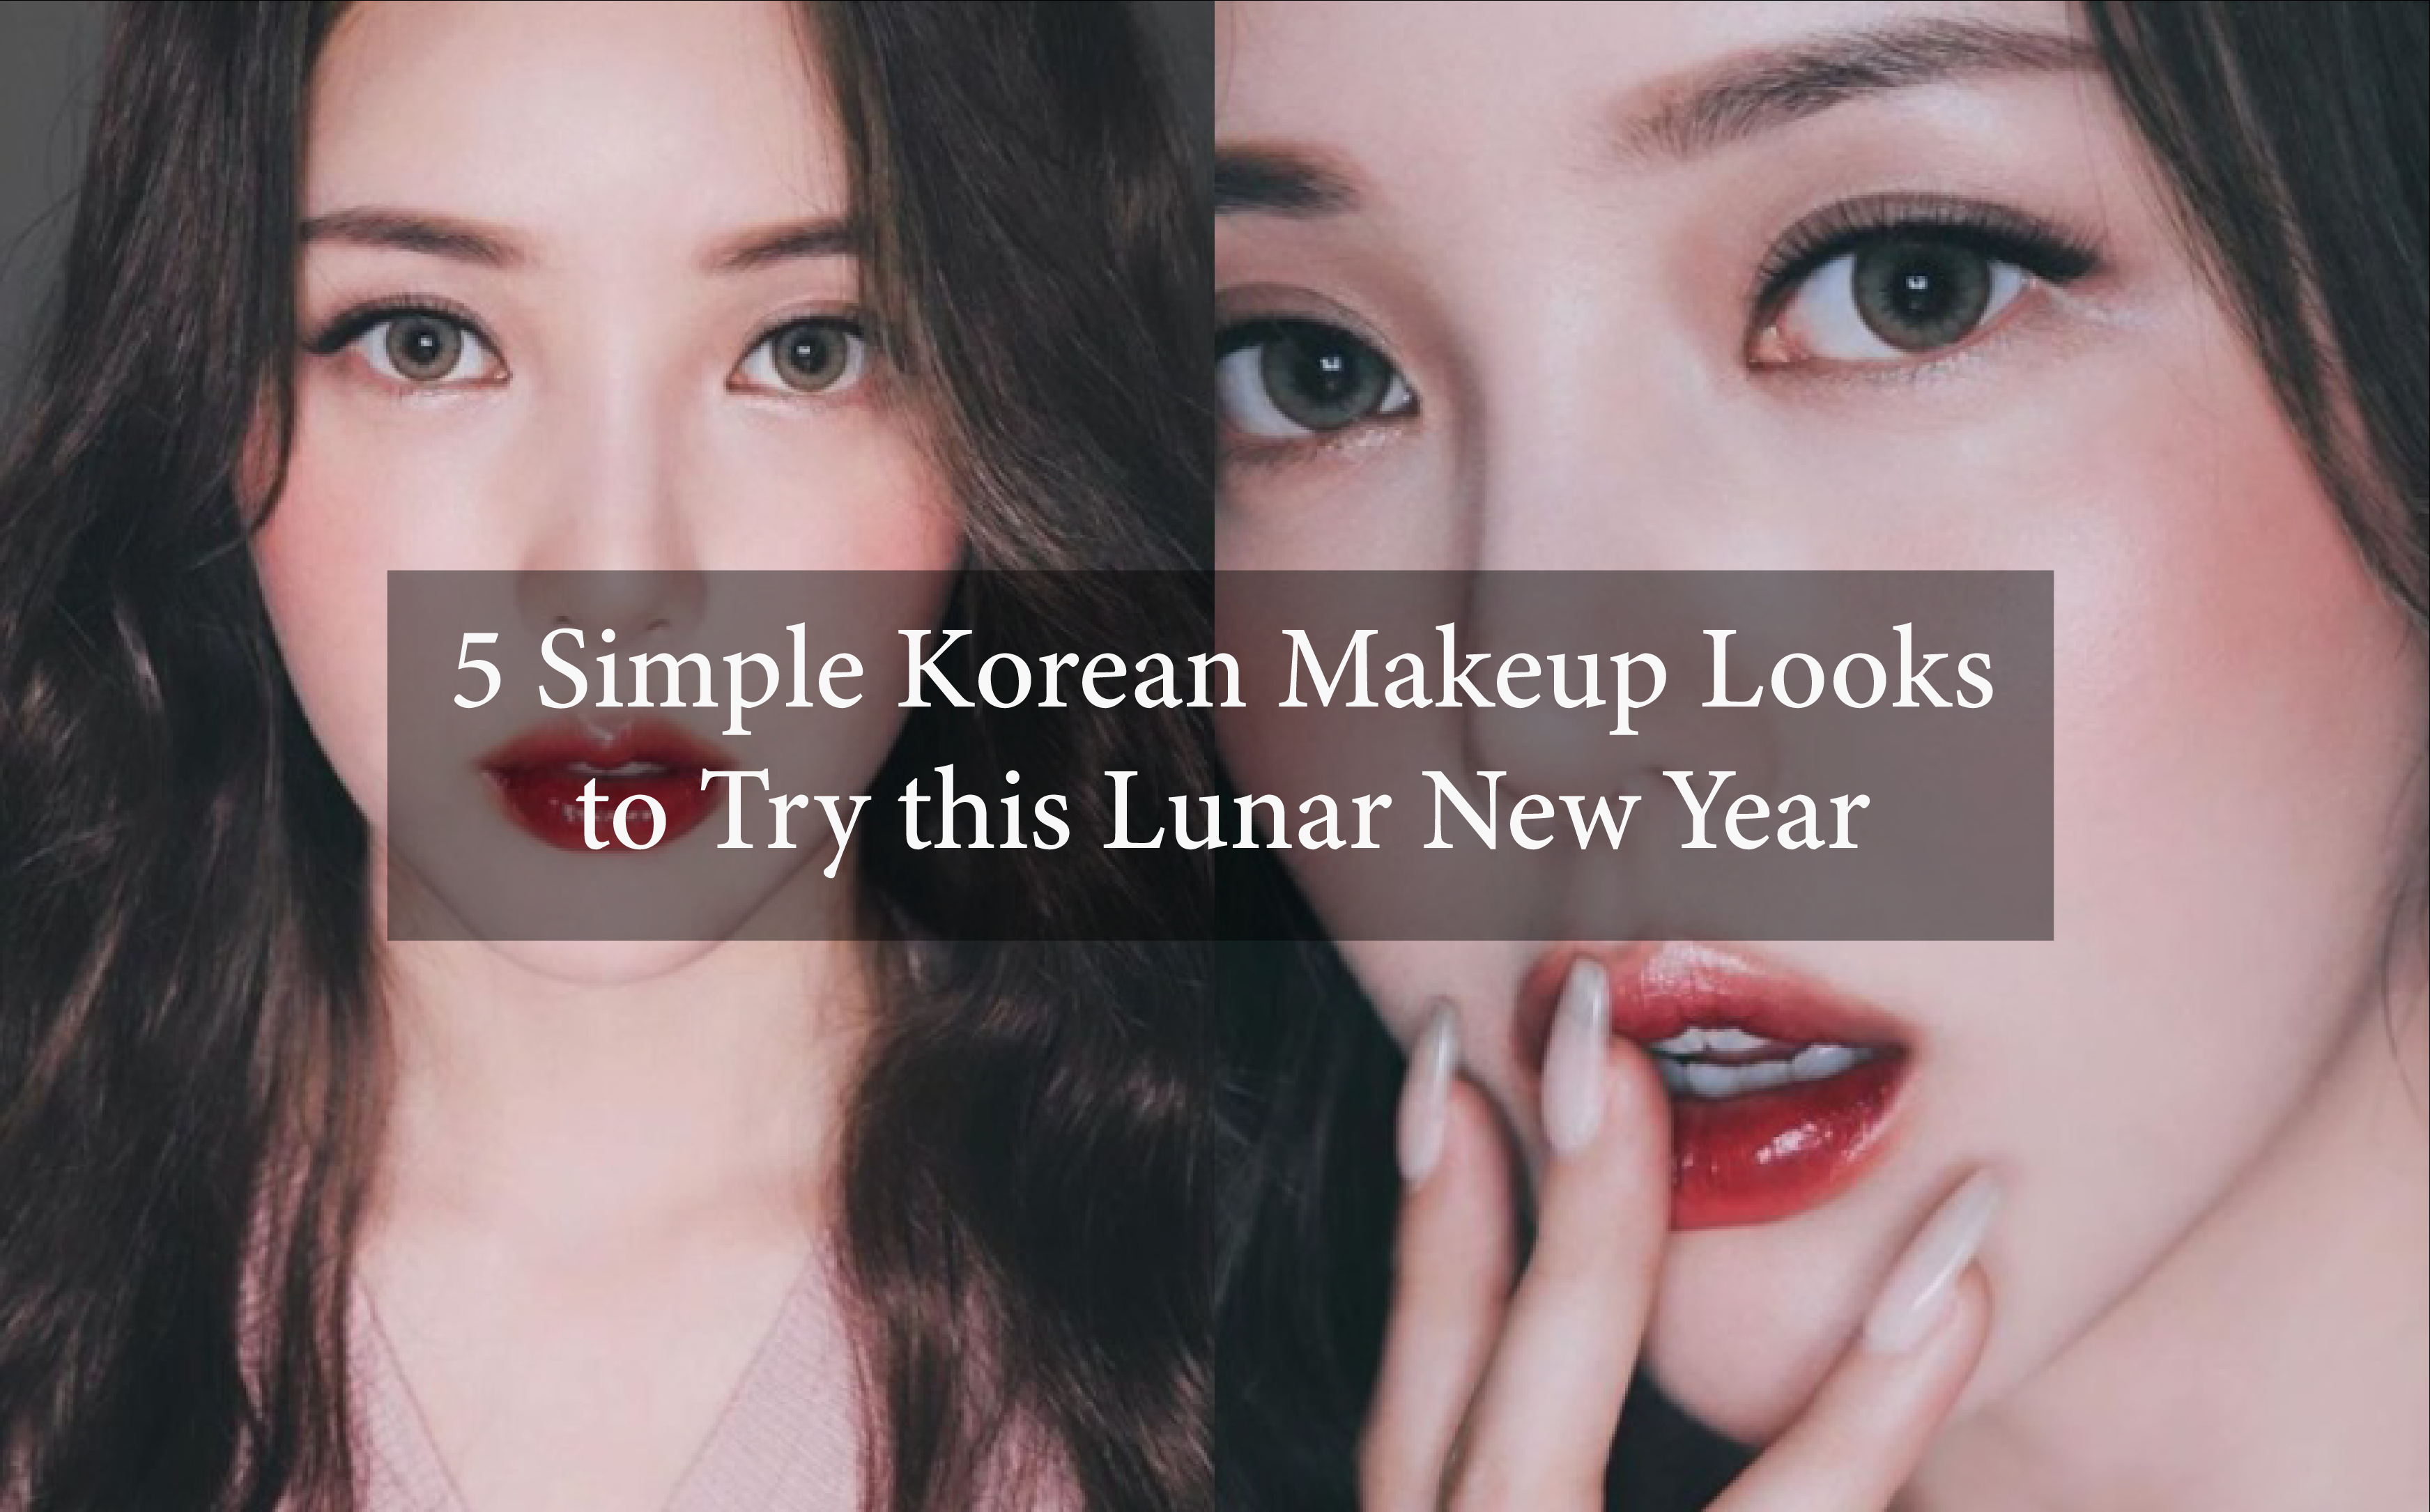 5 Simple Korean Makeup Looks to Try this Lunar New Year 1